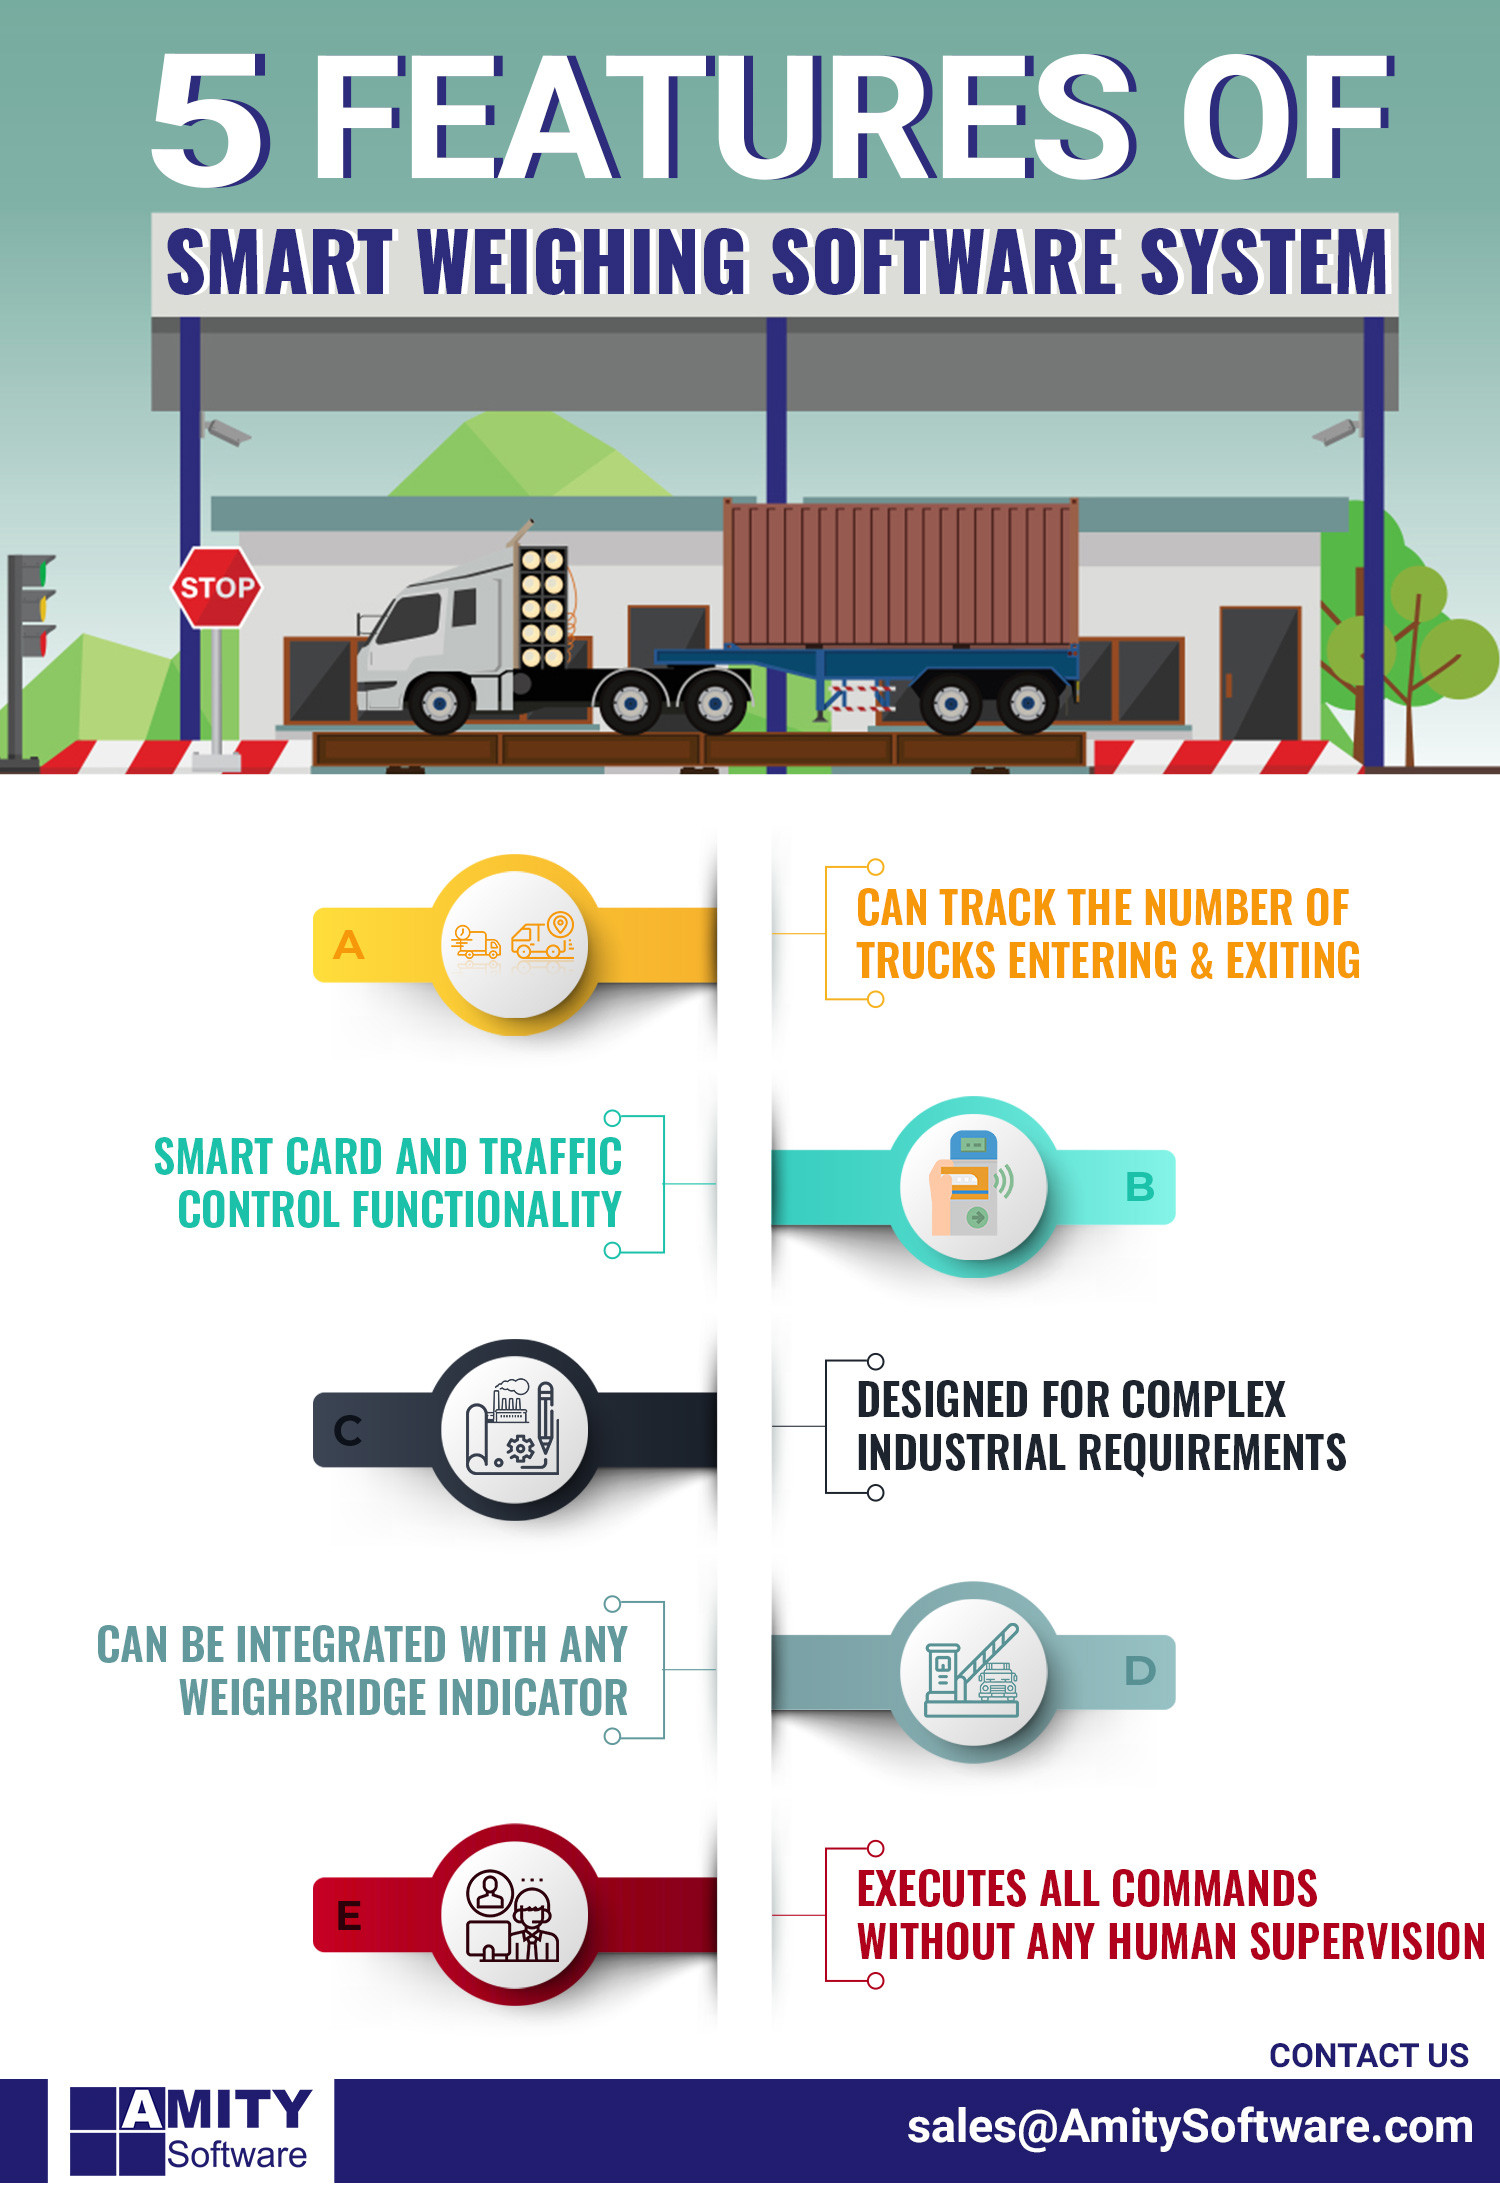 5 Features of Smart Weighing Software System Infographic